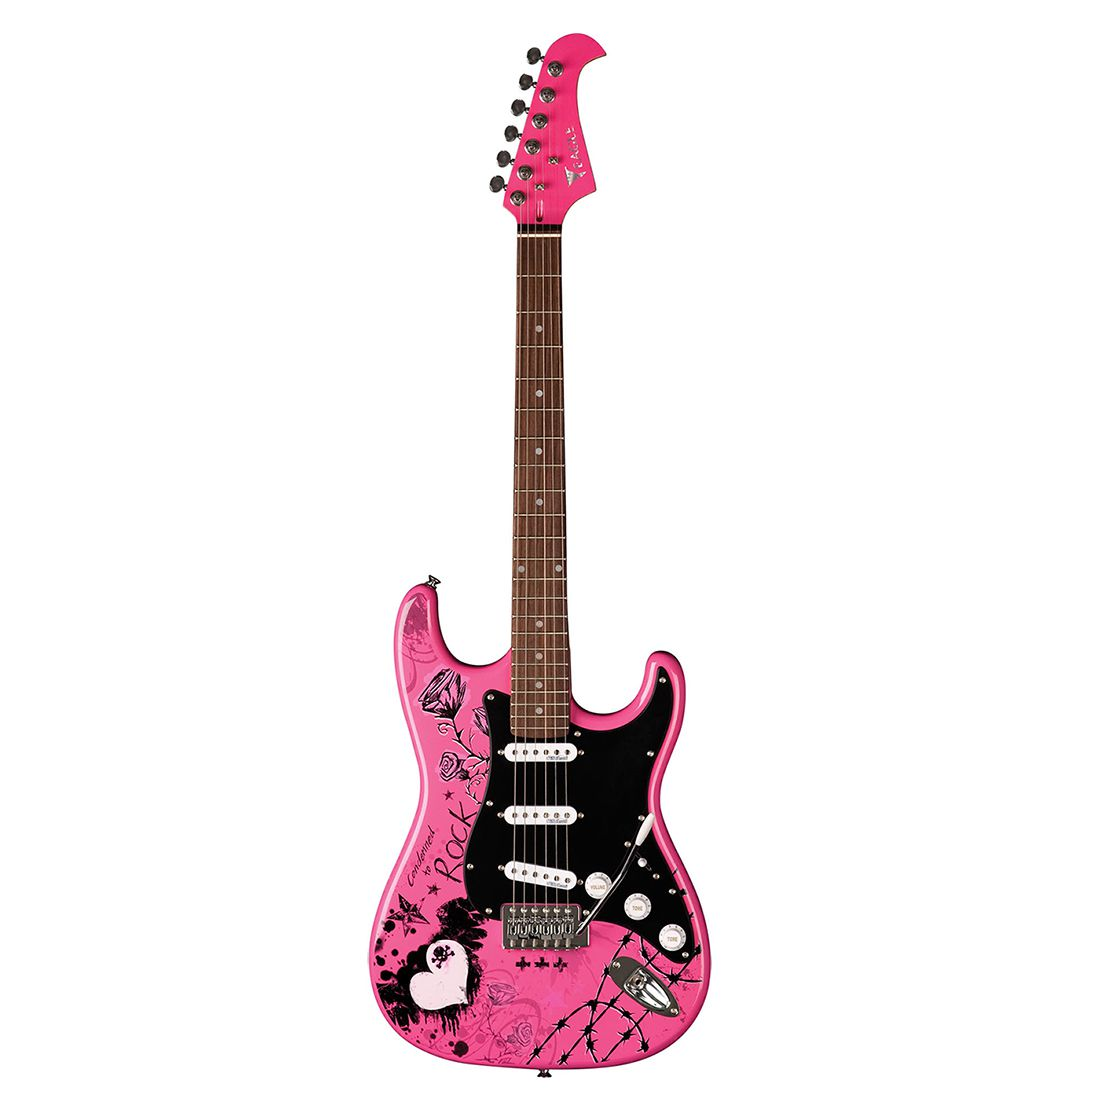 Guitarra Eagle Strato EGP10 CR Rosa Rock Desenhada